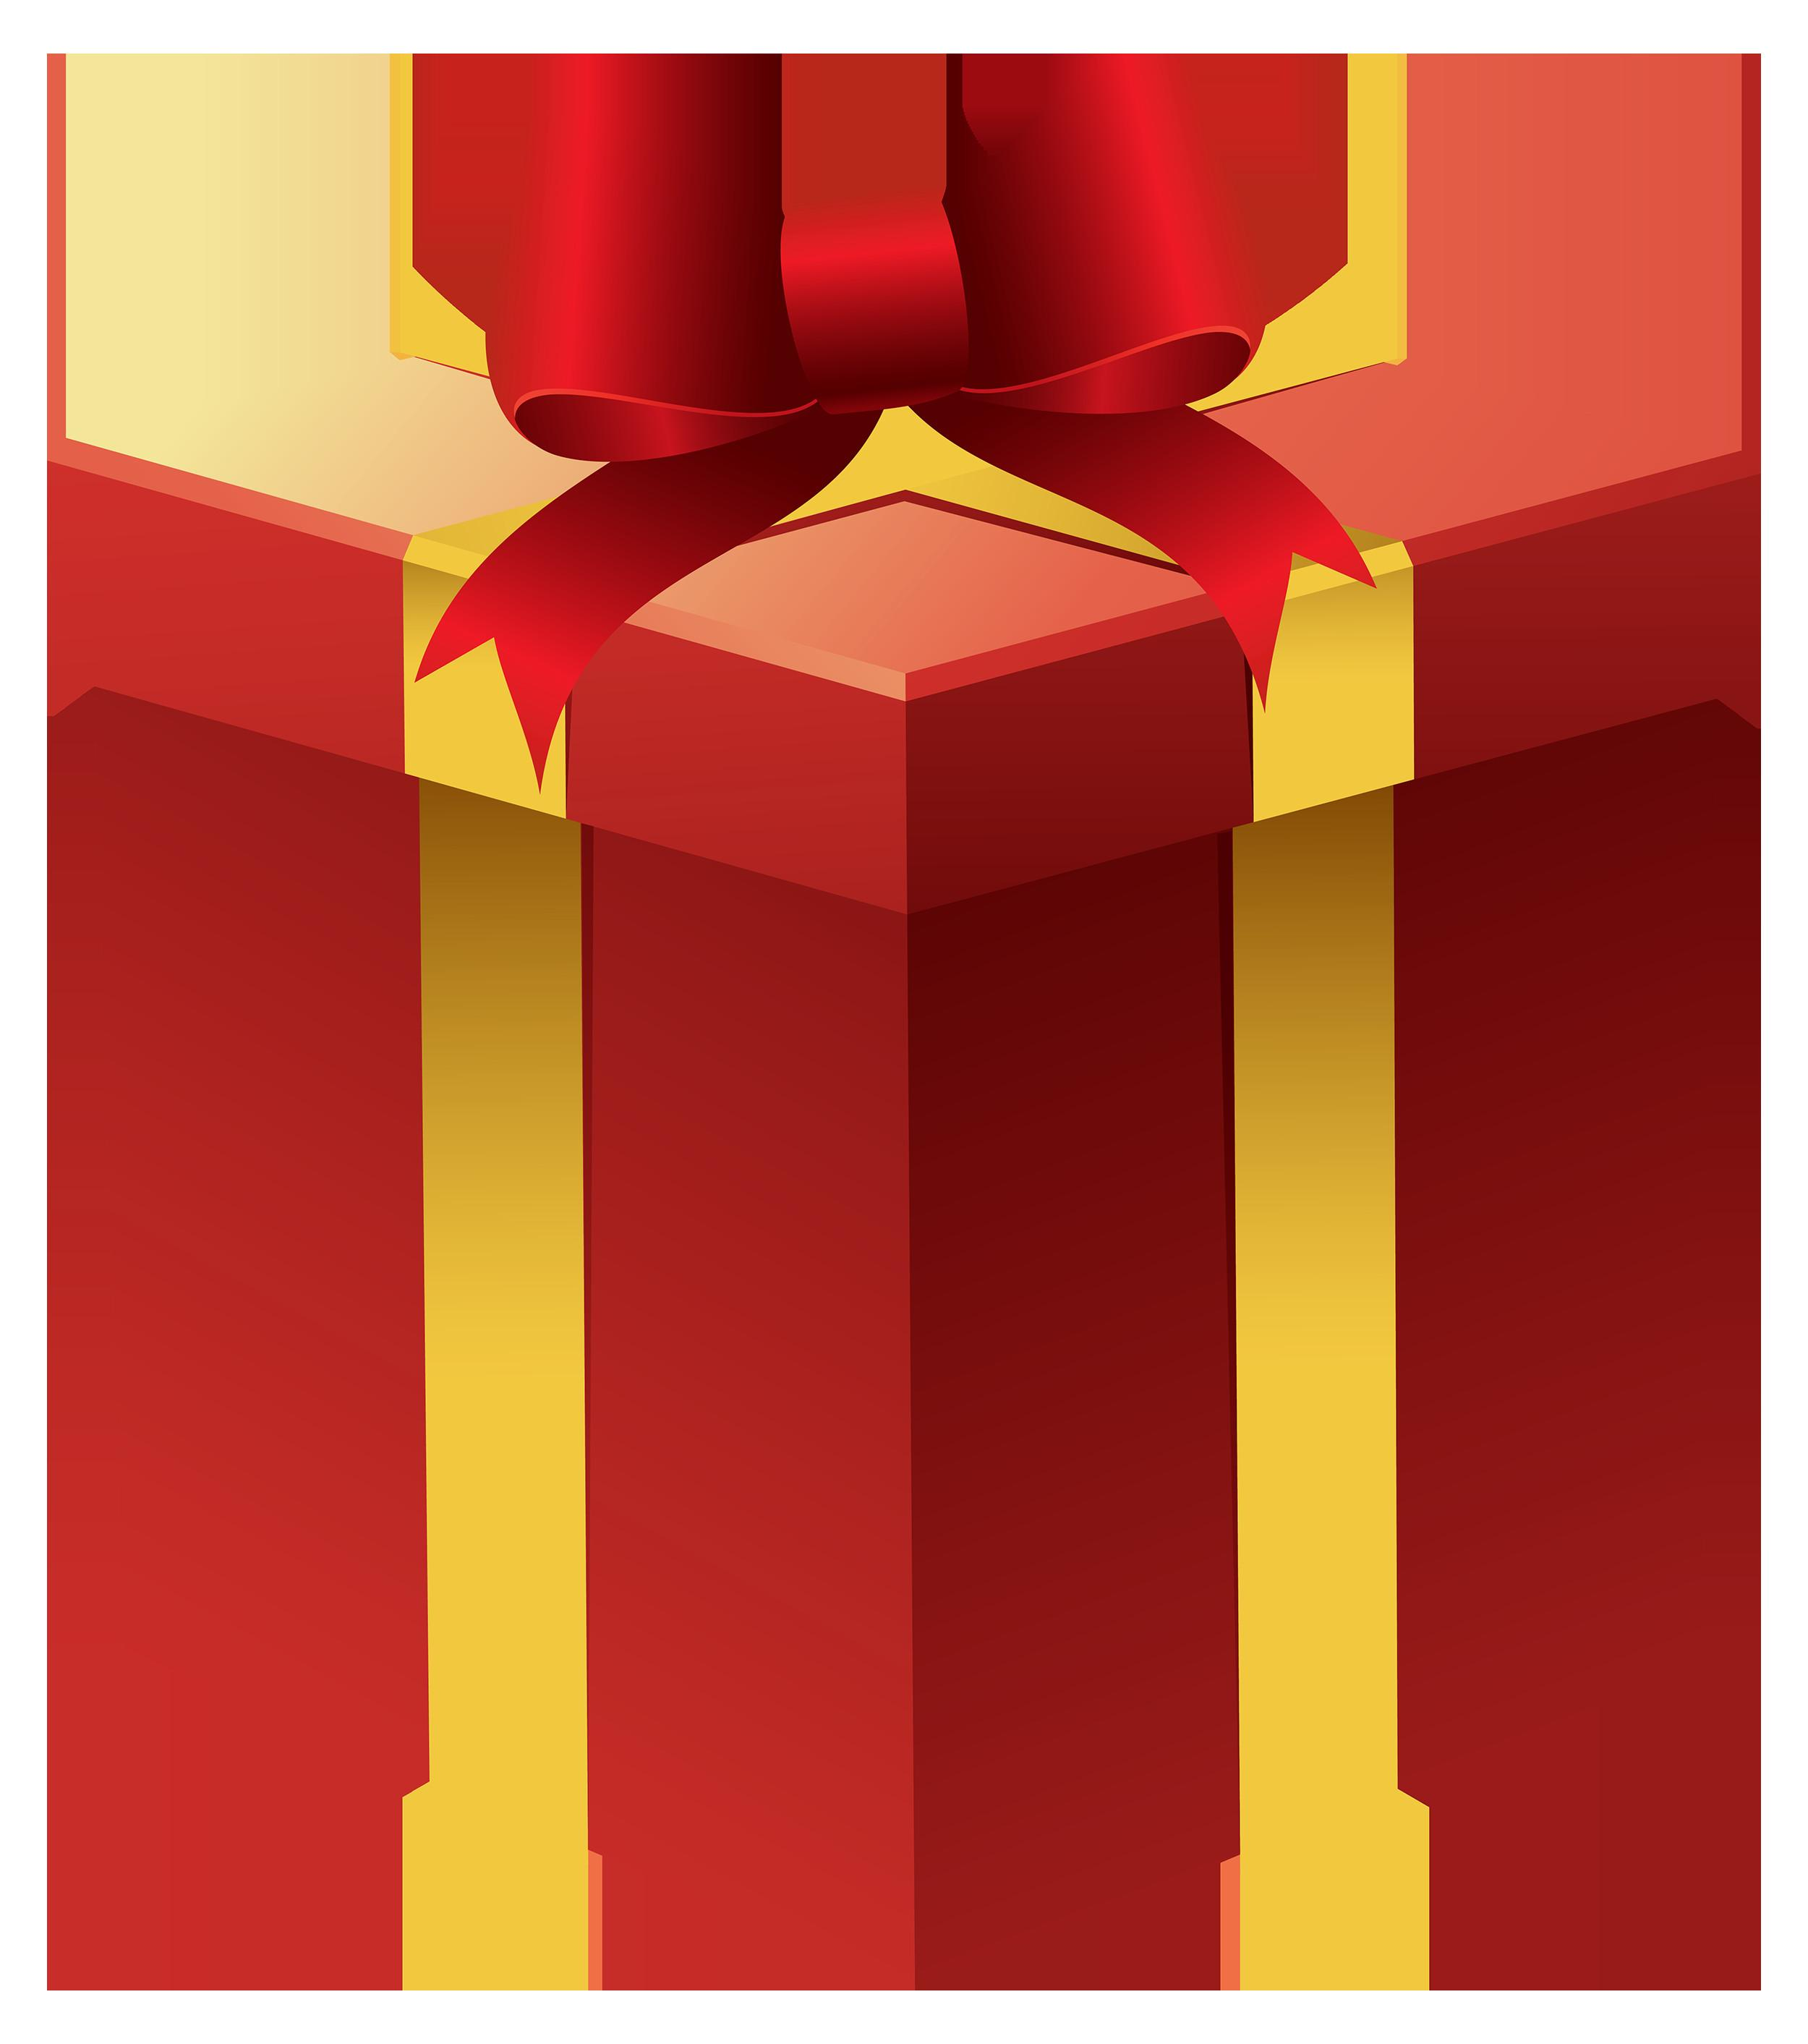 Gift Box Red Clipart Best Web